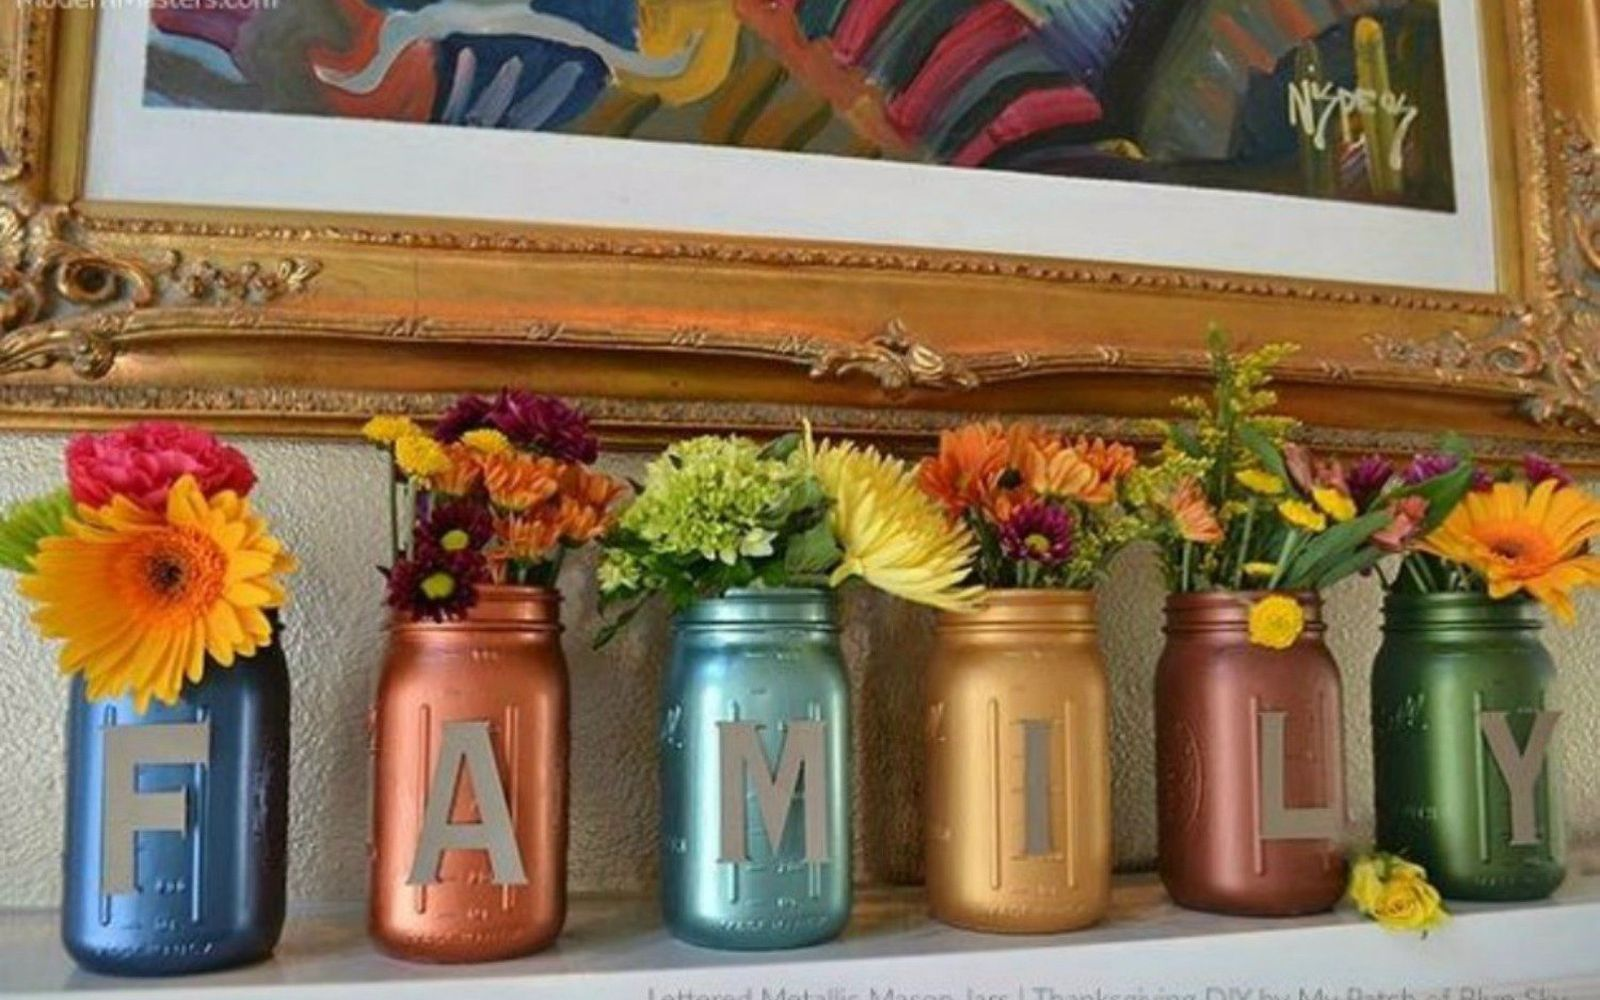 s 14 exciting mason jar ideas you just have to try, mason jars, 7 The gorgeous metallic mantle sign